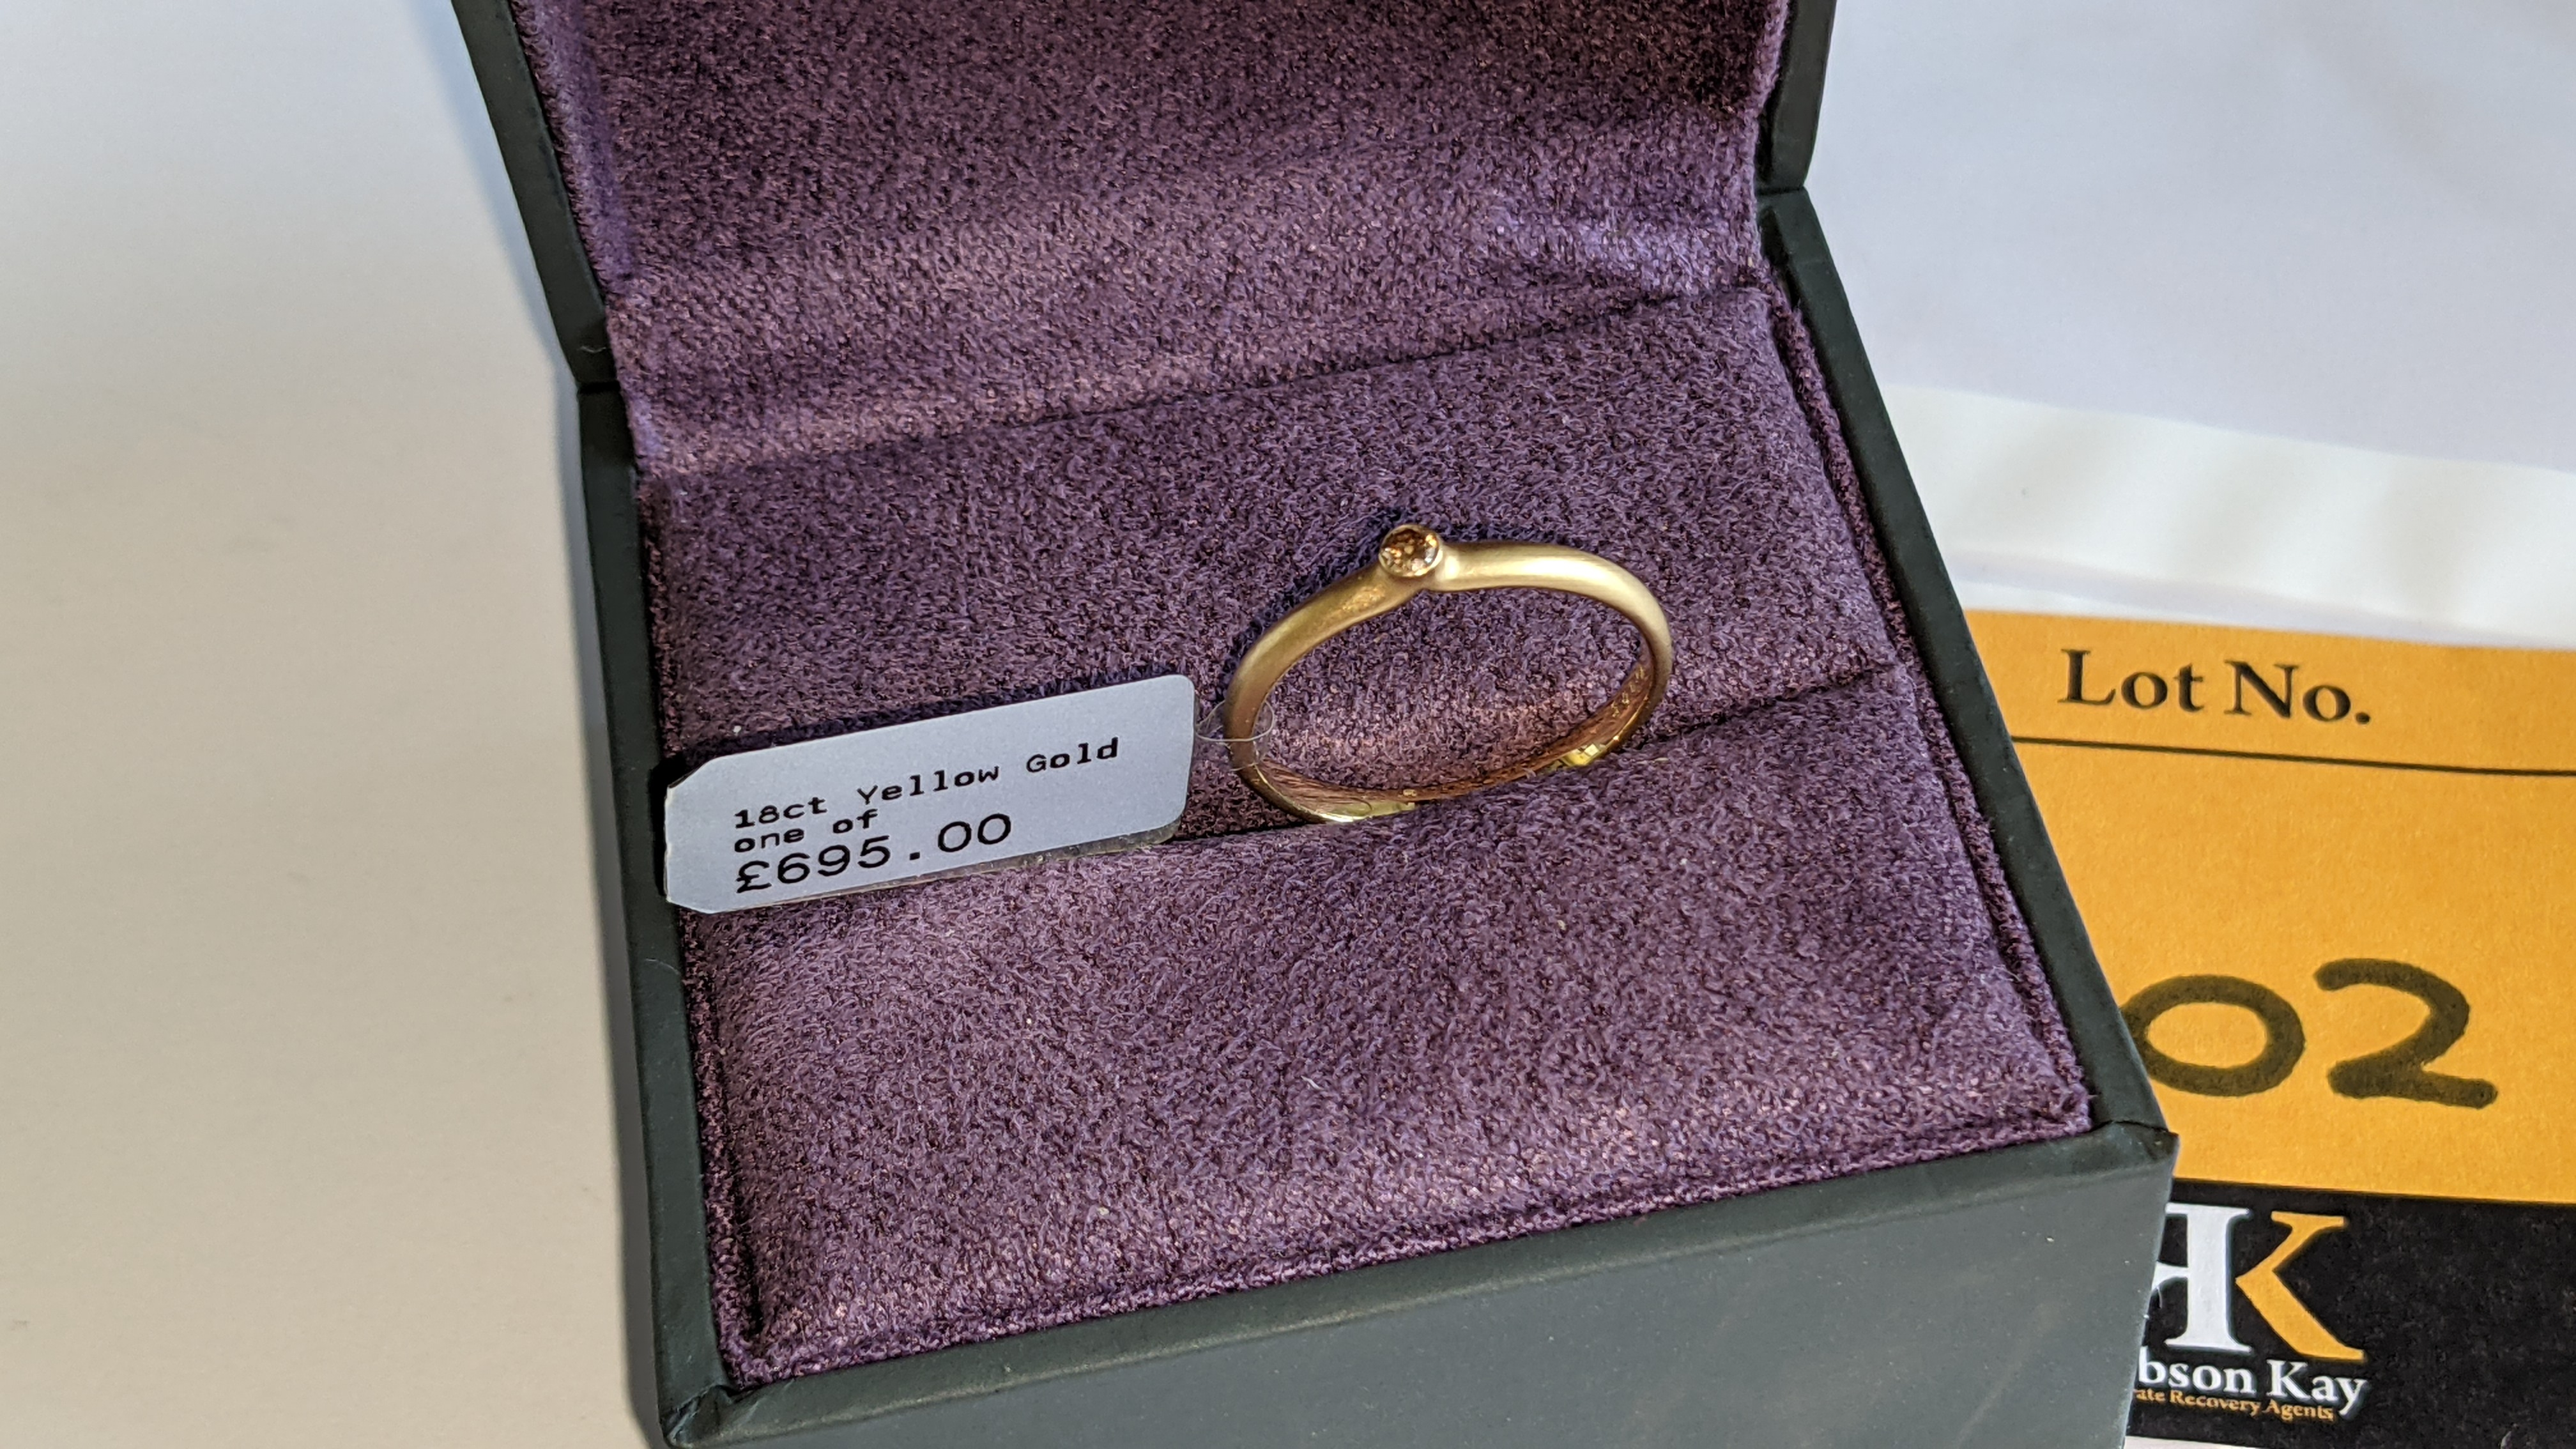 18ct yellow gold & champagne diamond ring RRP £695 - Image 14 of 14